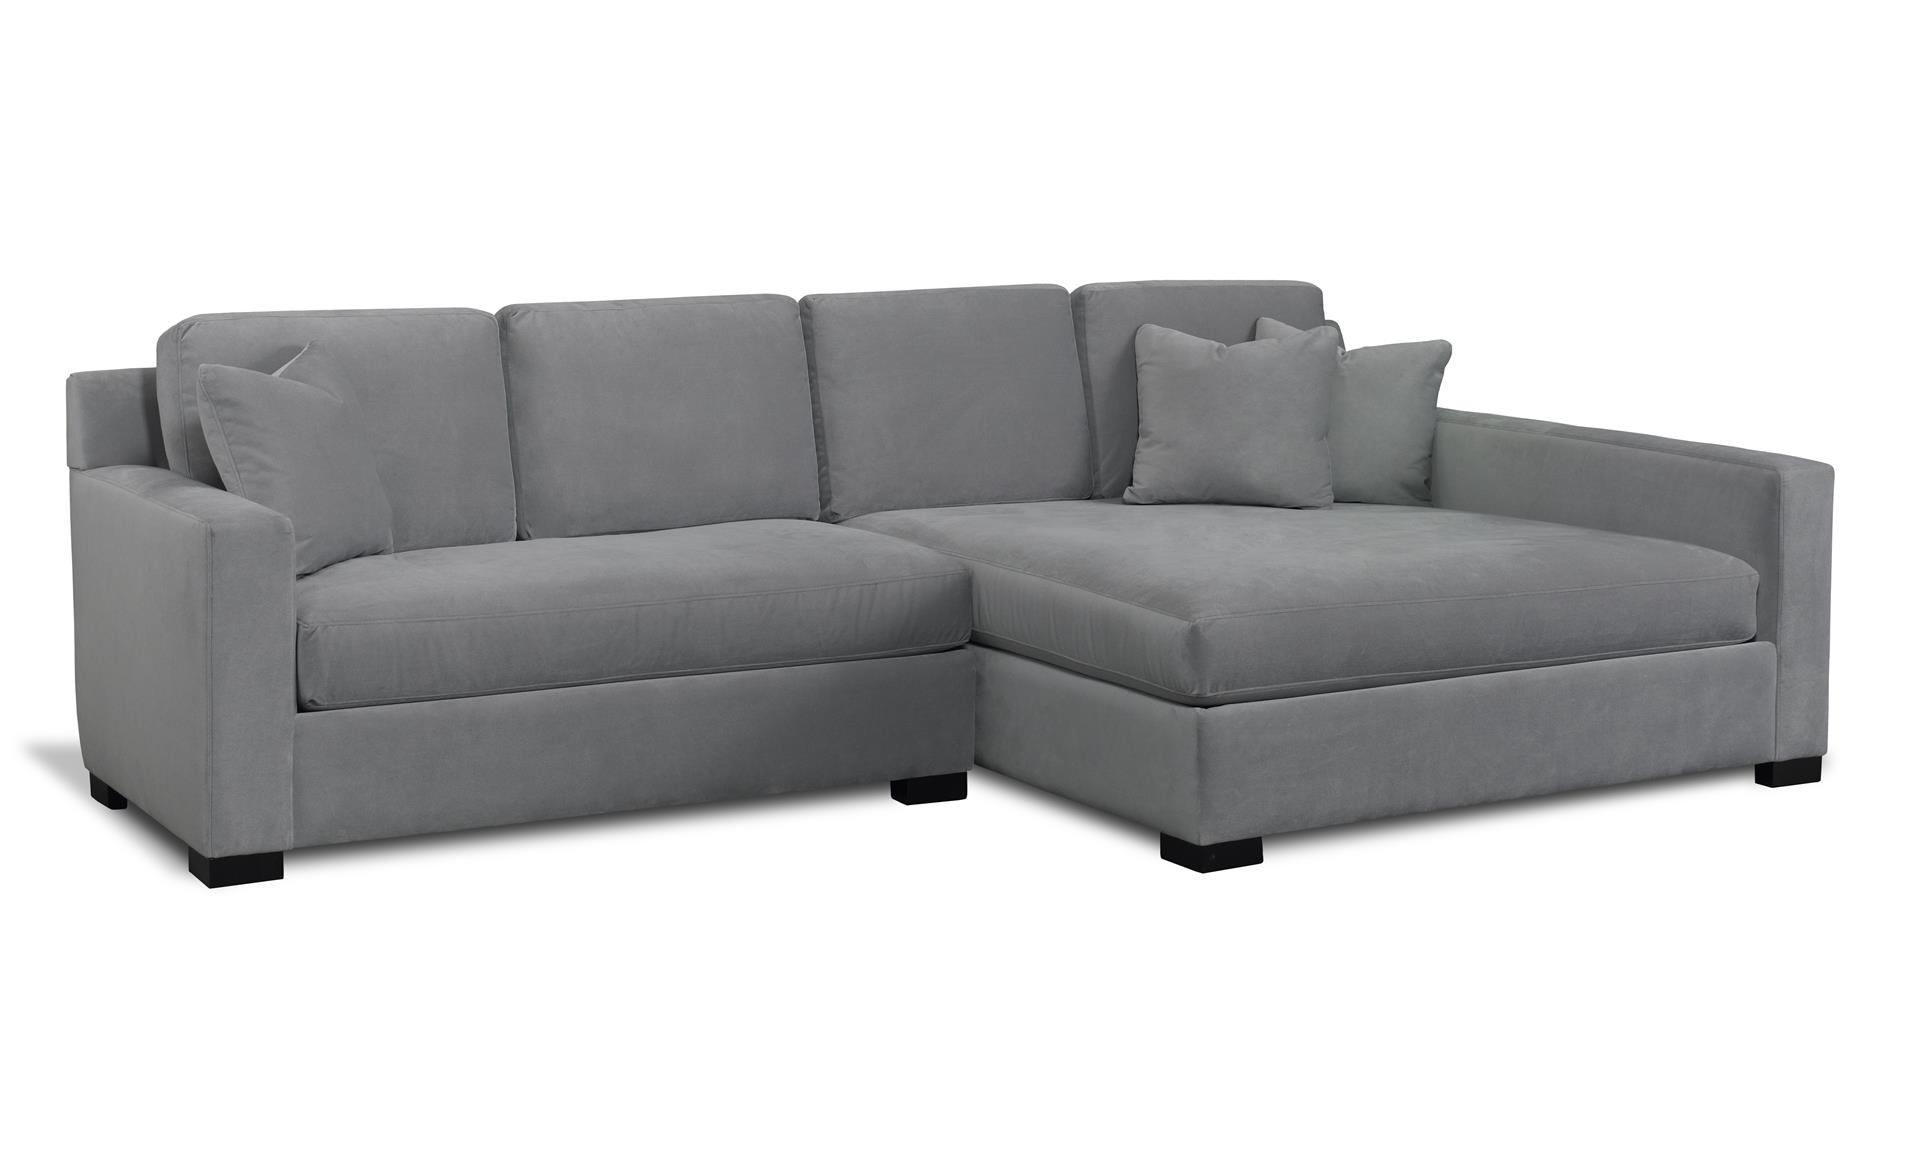 Precedent Cameron Sofa Sectional From Dutchcrafters Within Cameron Sofa Chairs (View 17 of 25)